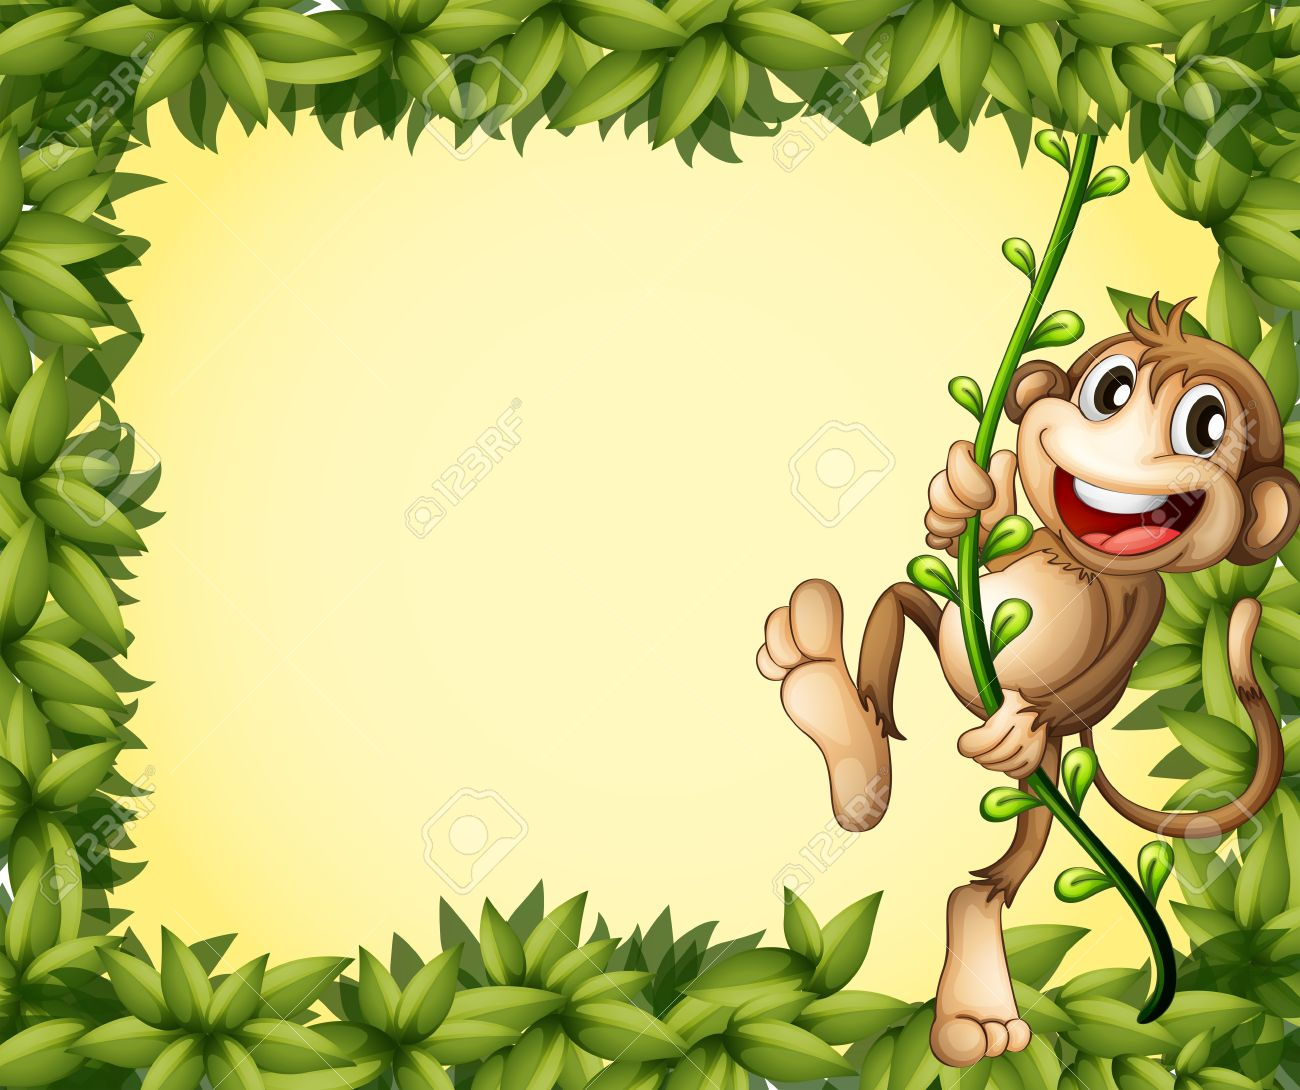 Illustration of the green border with a monkey Stock Vector - 17918500